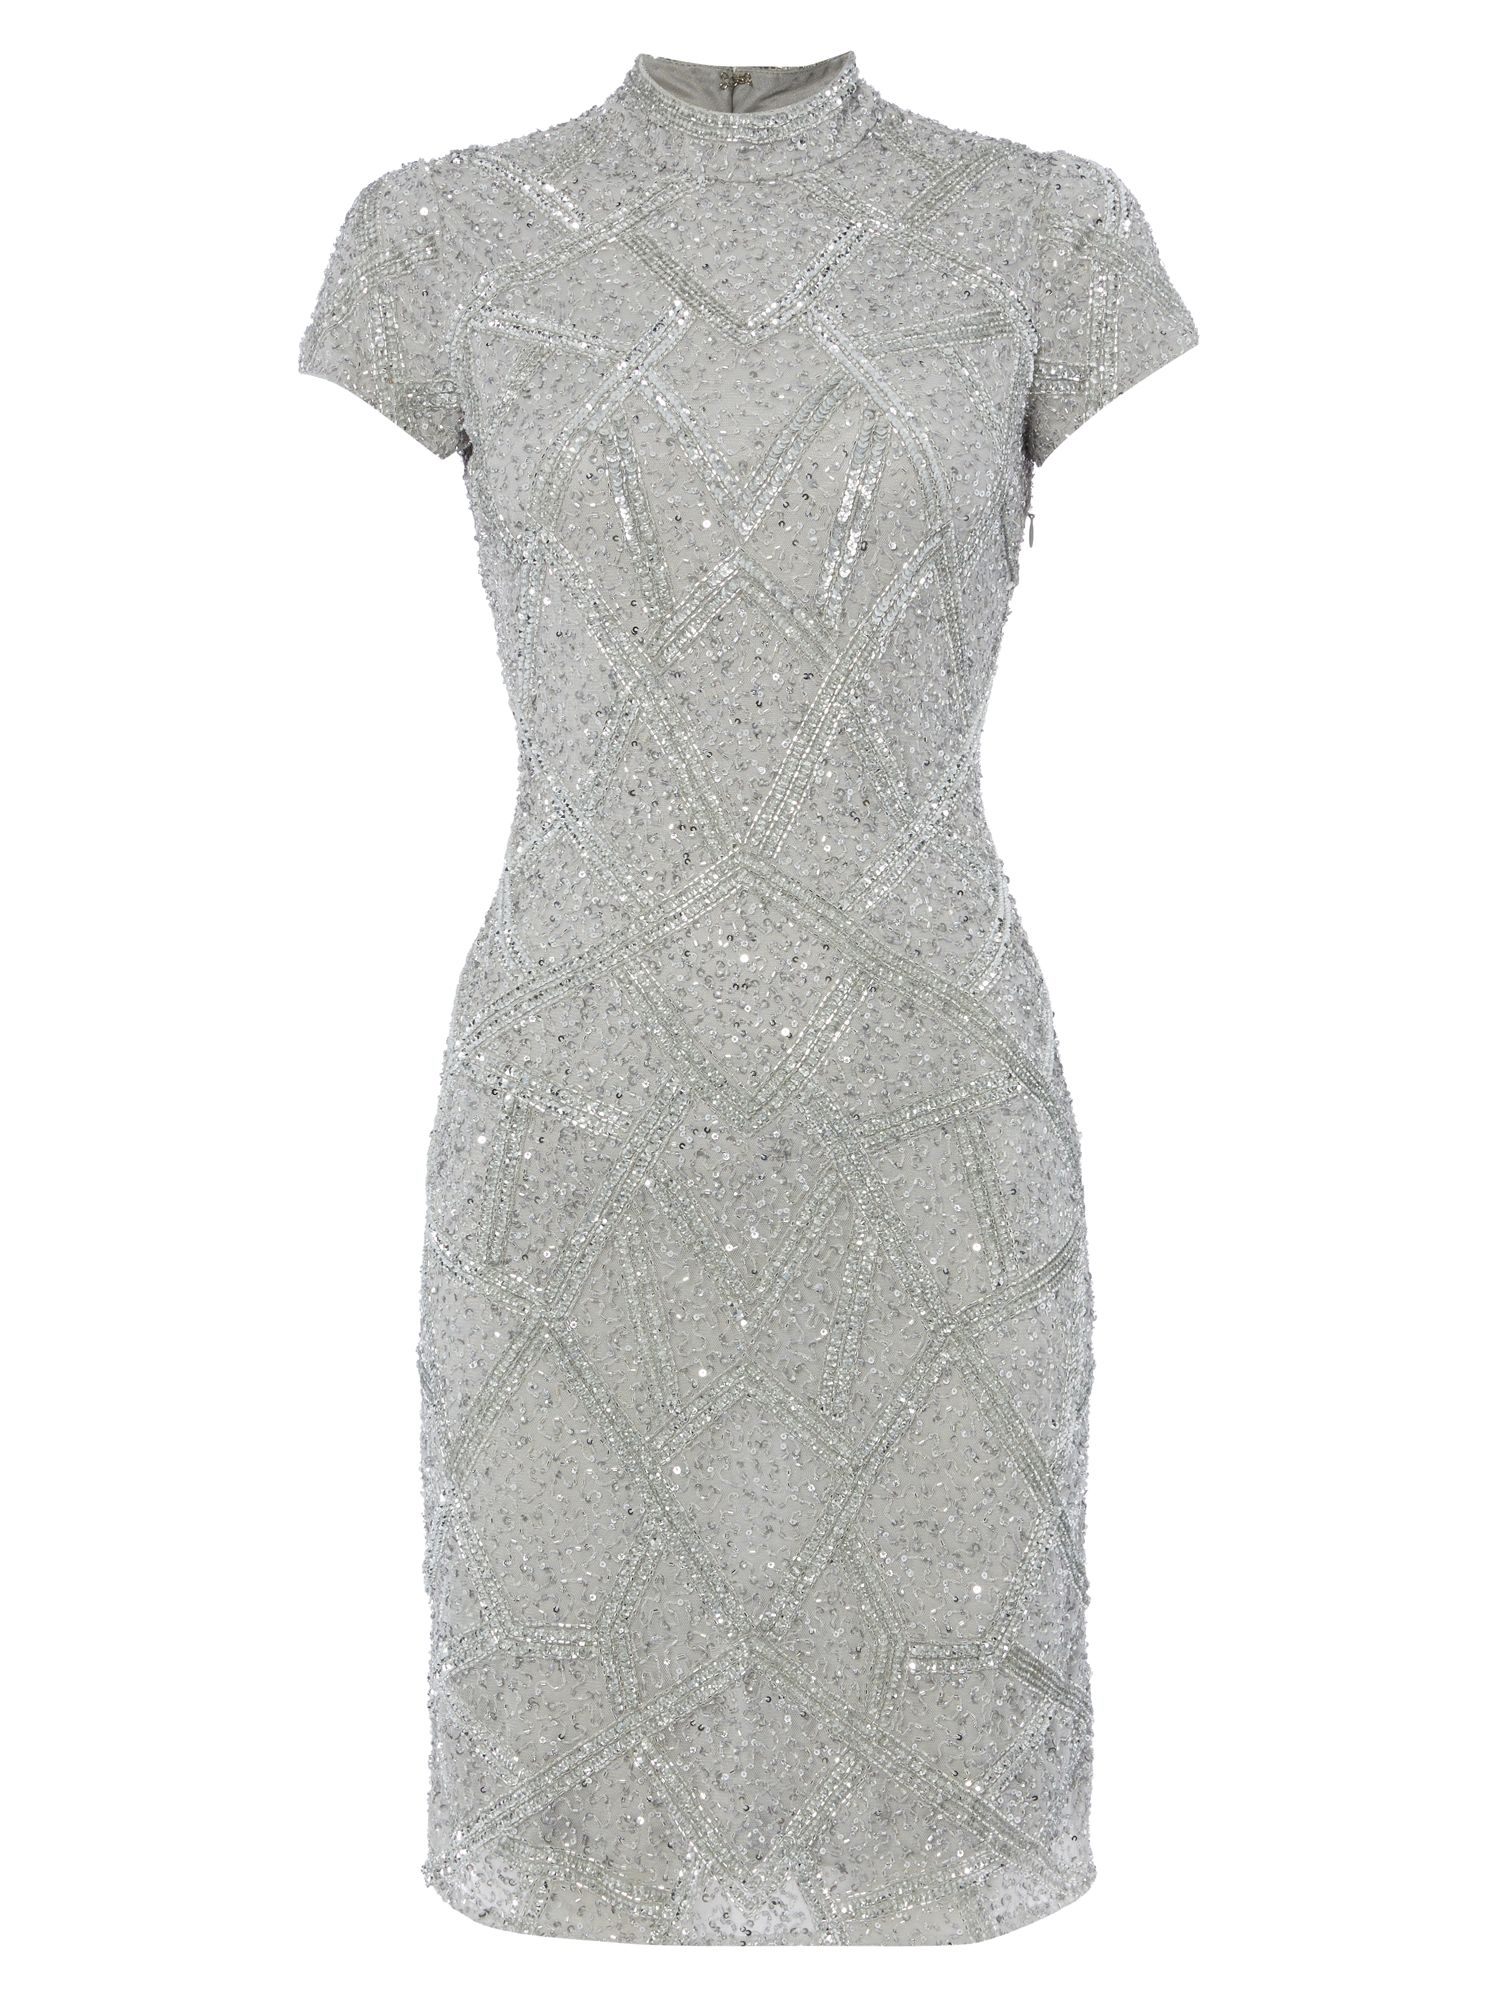 RAISHMA Silver High Neck Dress, Silver Silverlic